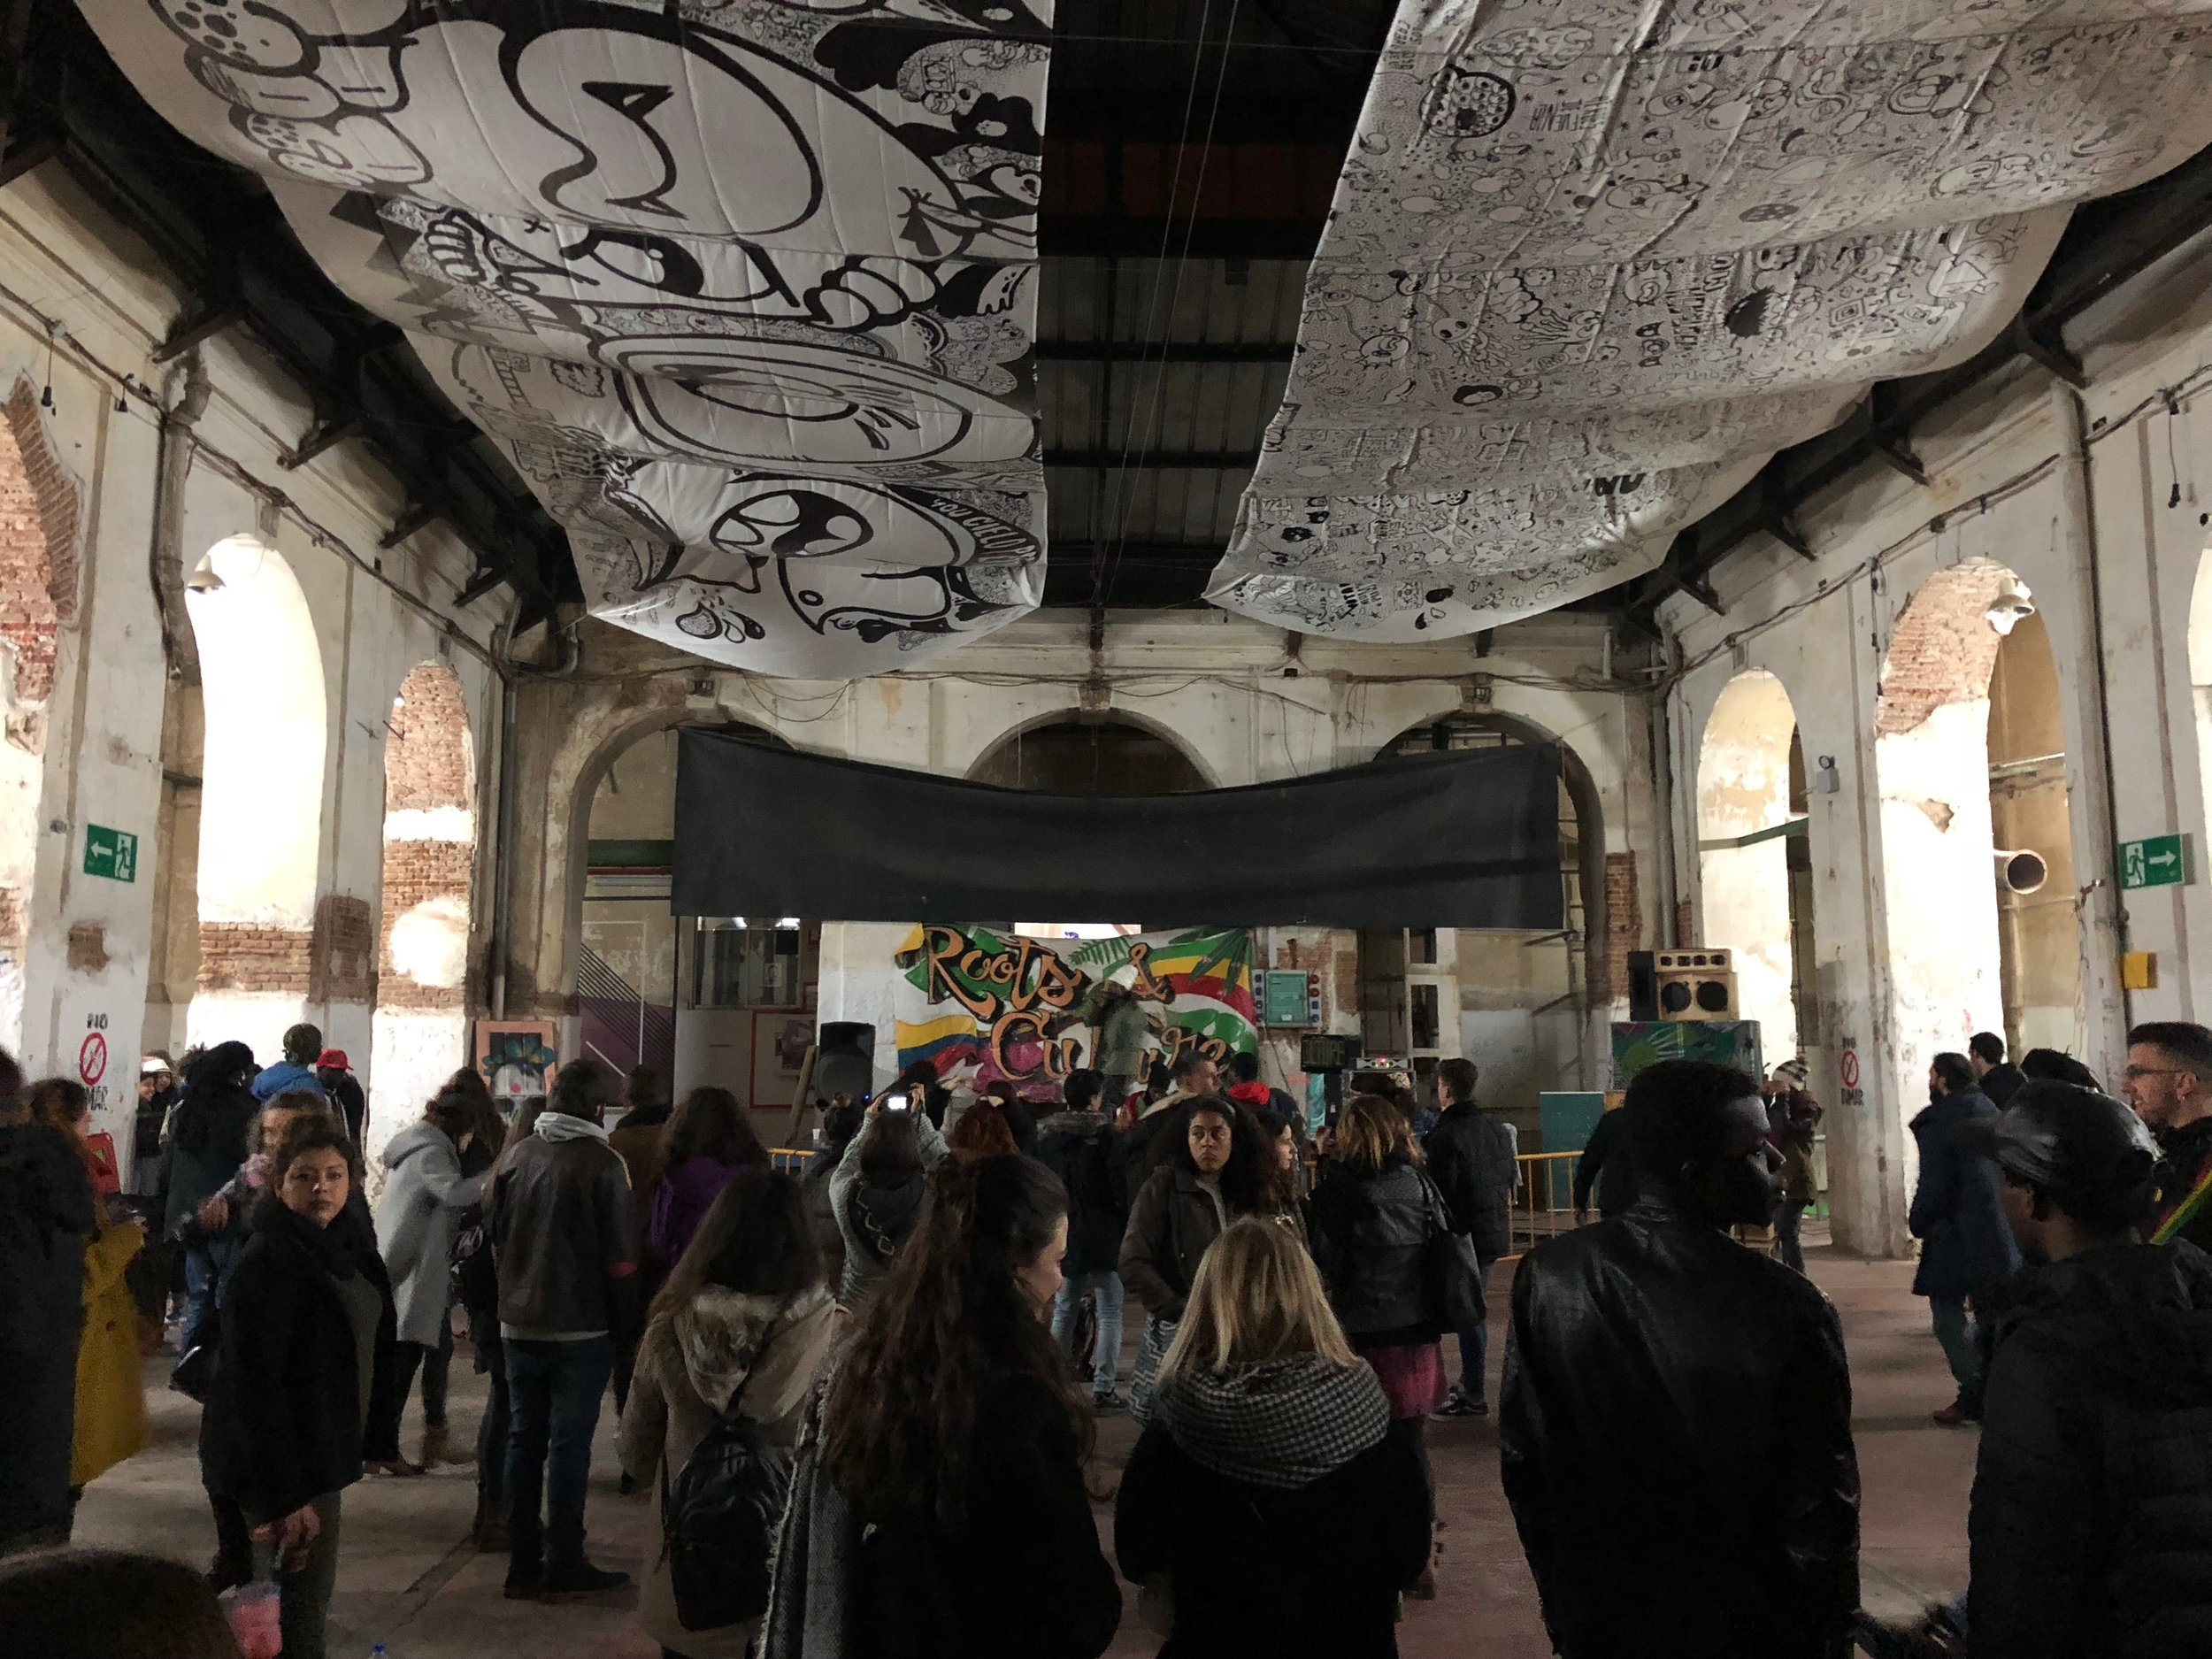 Tabacalera performance space